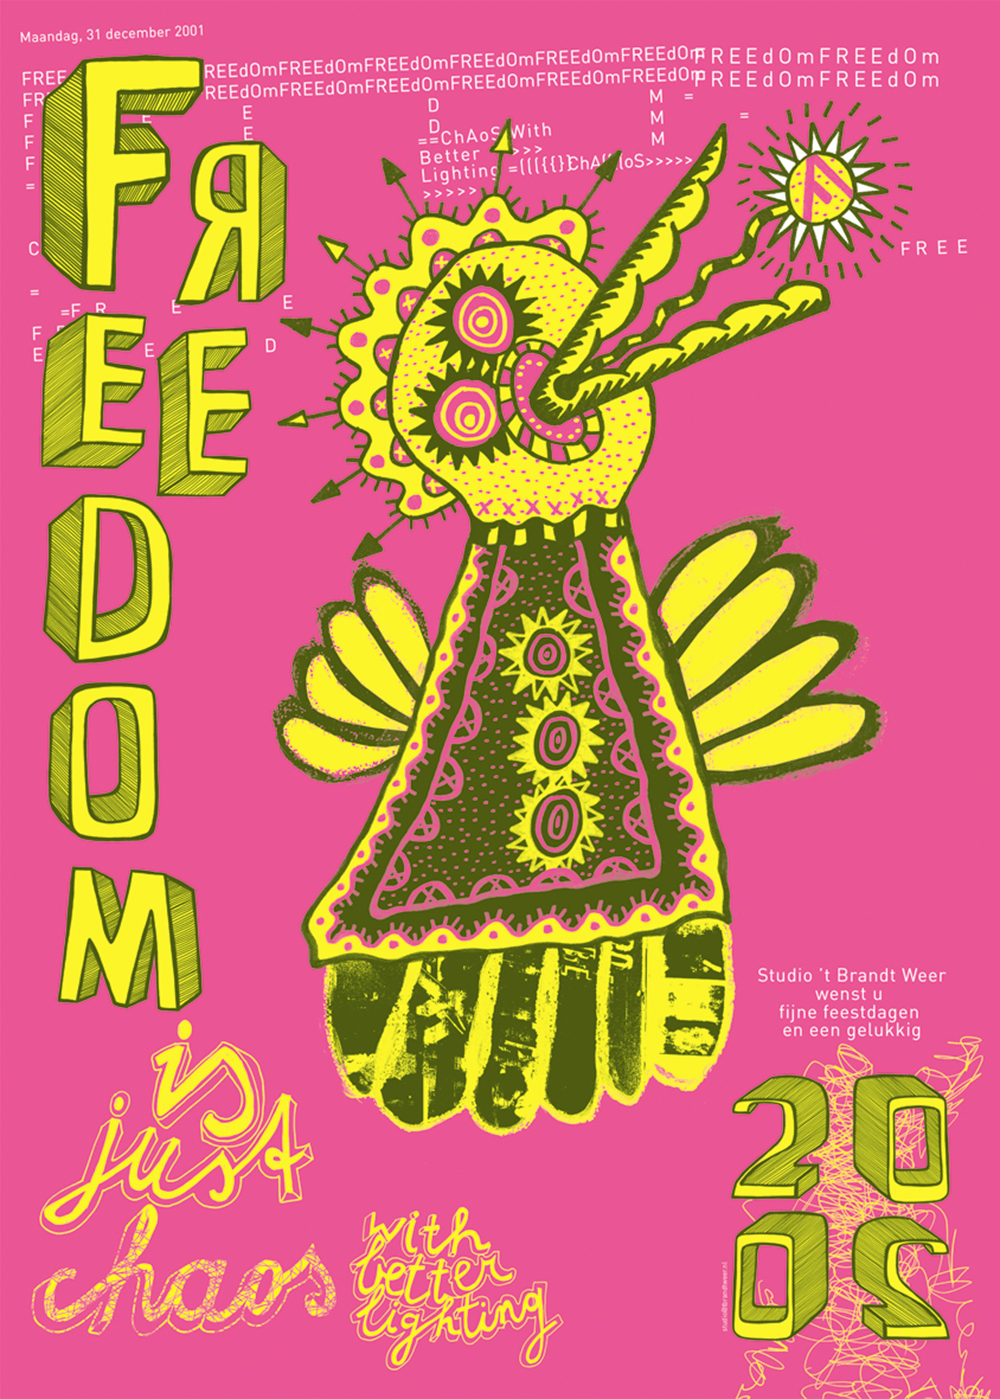 Poster Freedom by Marenthe.jpg